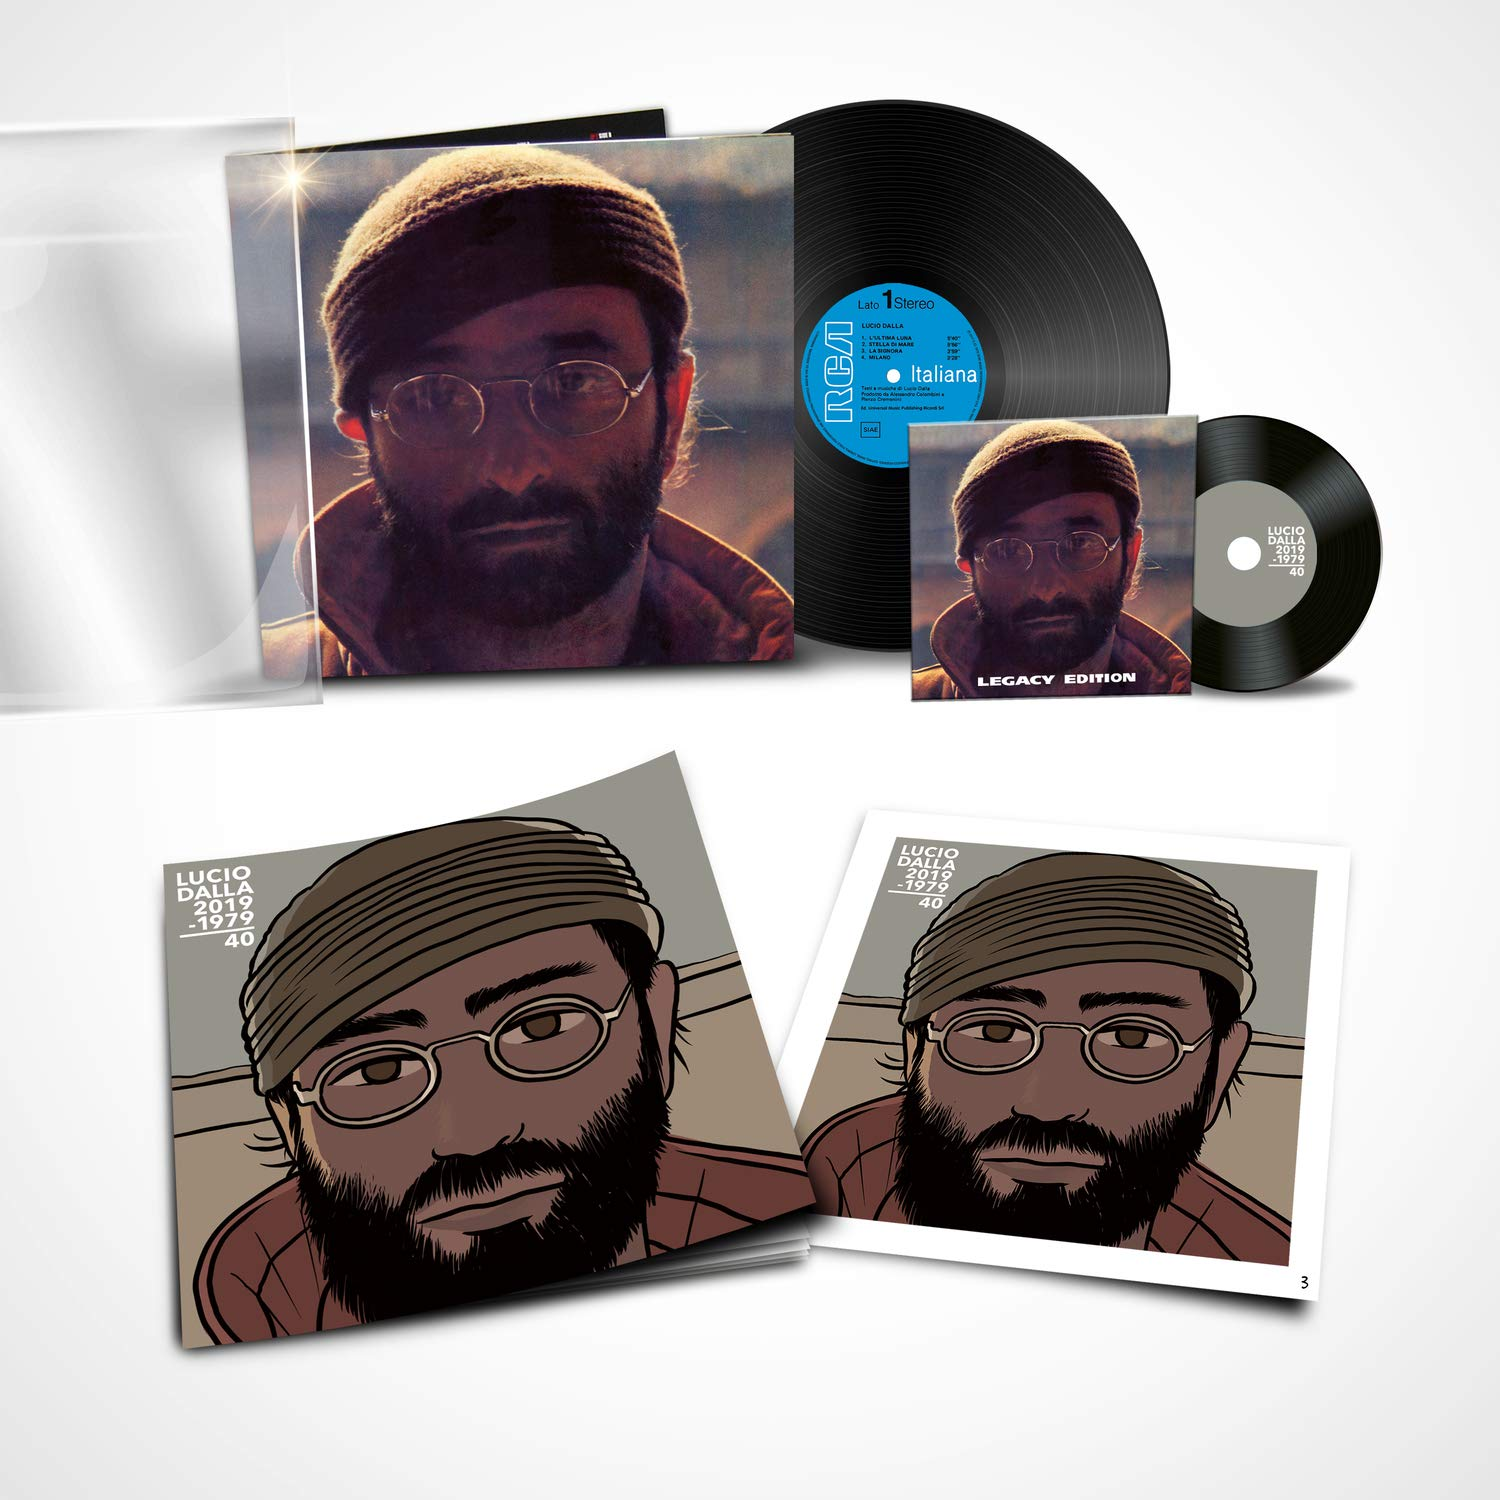 Lucio Dalla - Legacy Edition album cover 2019